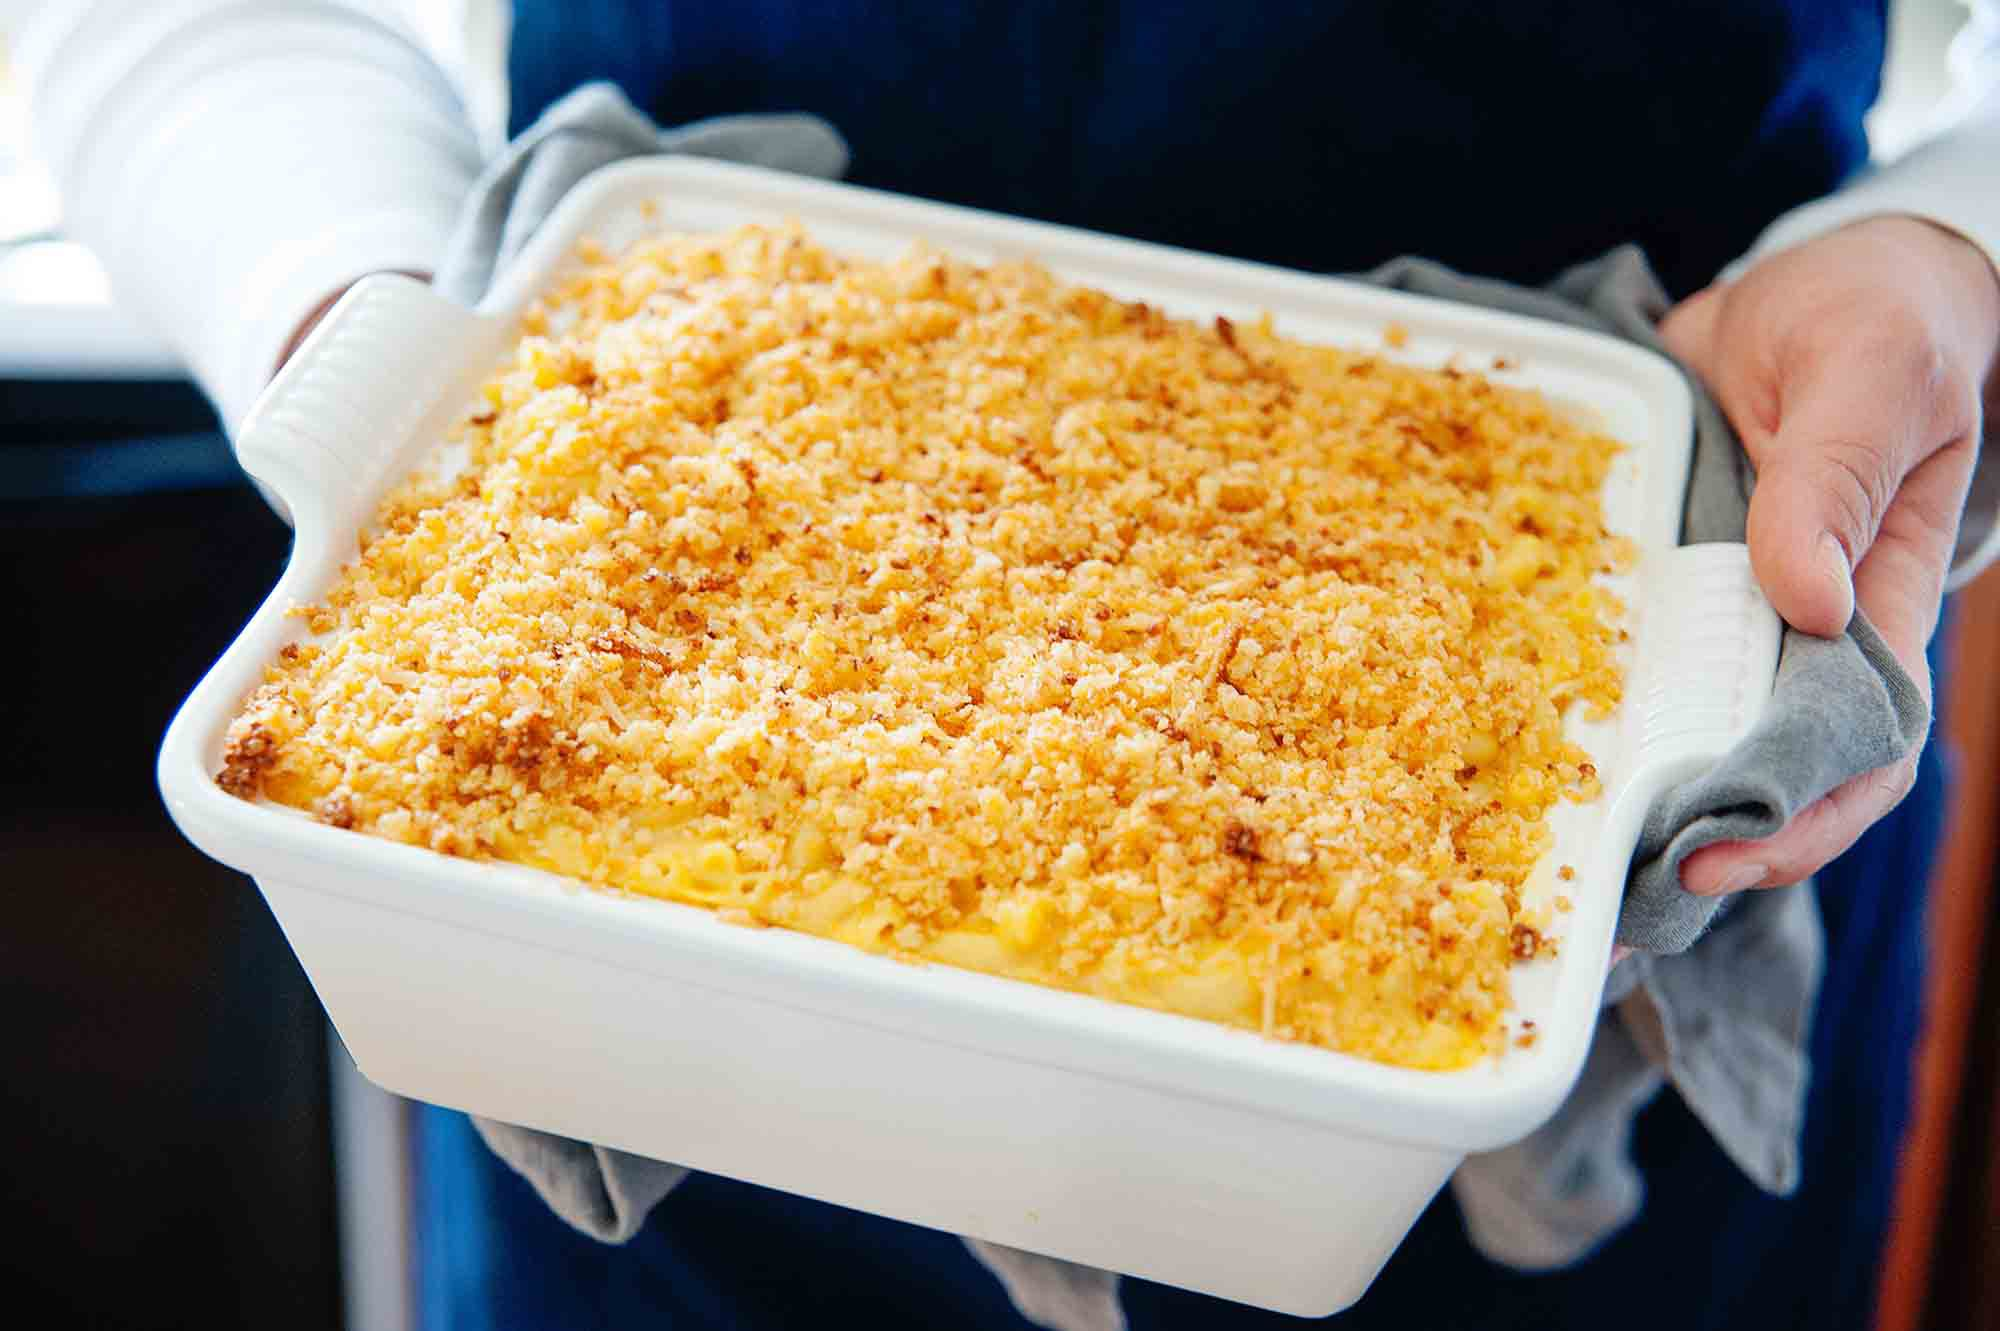 Baked Mac and Cheese held in hands